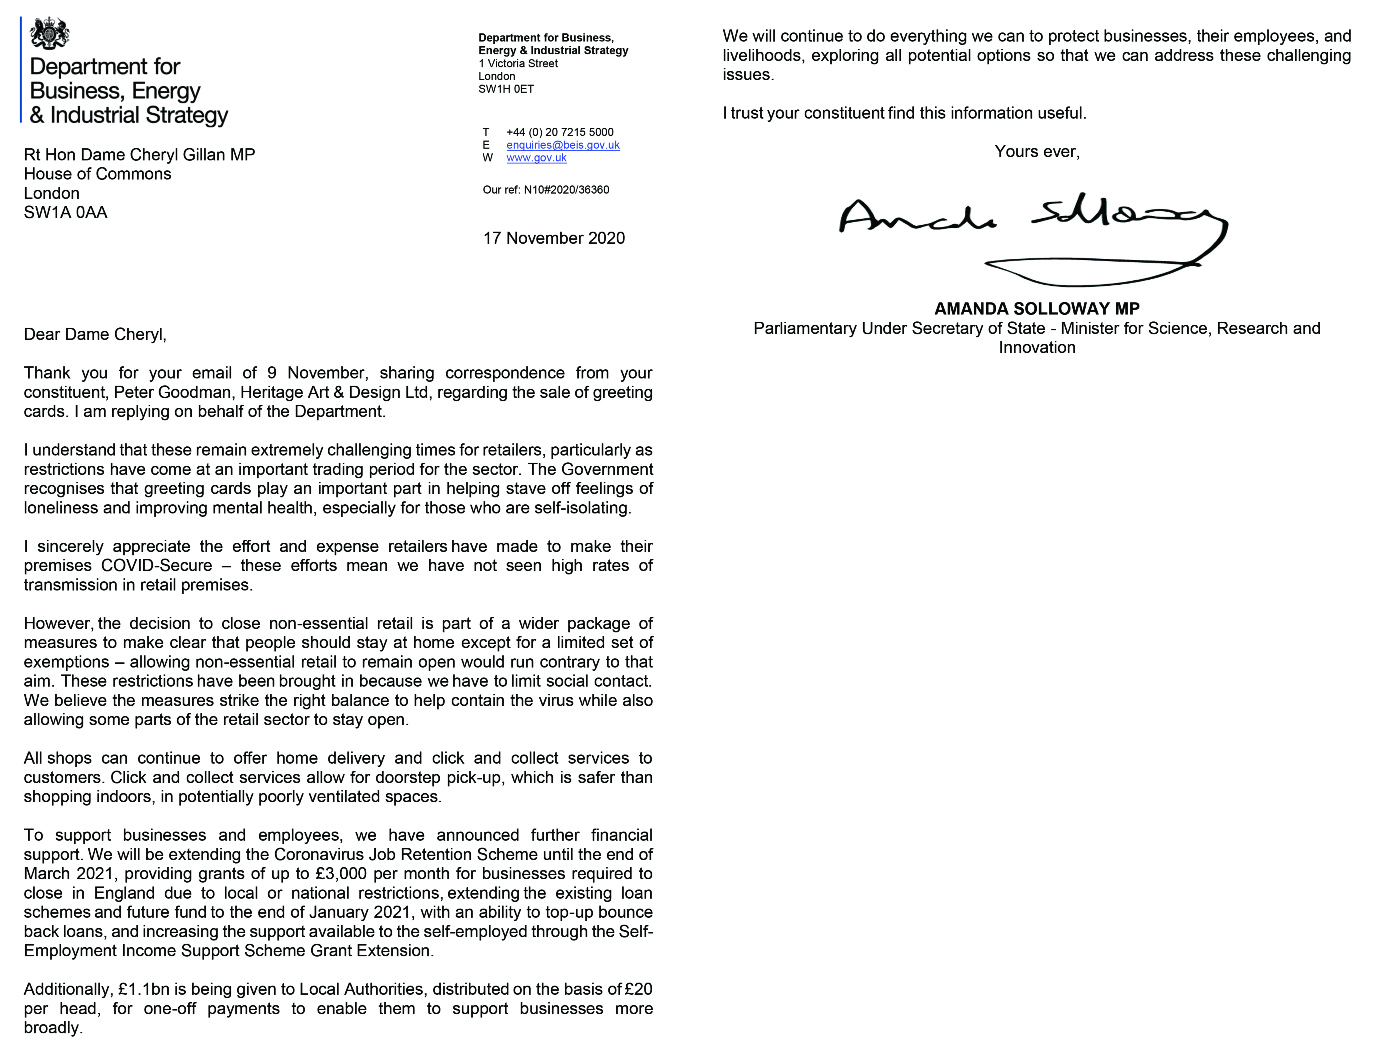 Above: The response Pete Goodman's MP received in response to his letter.